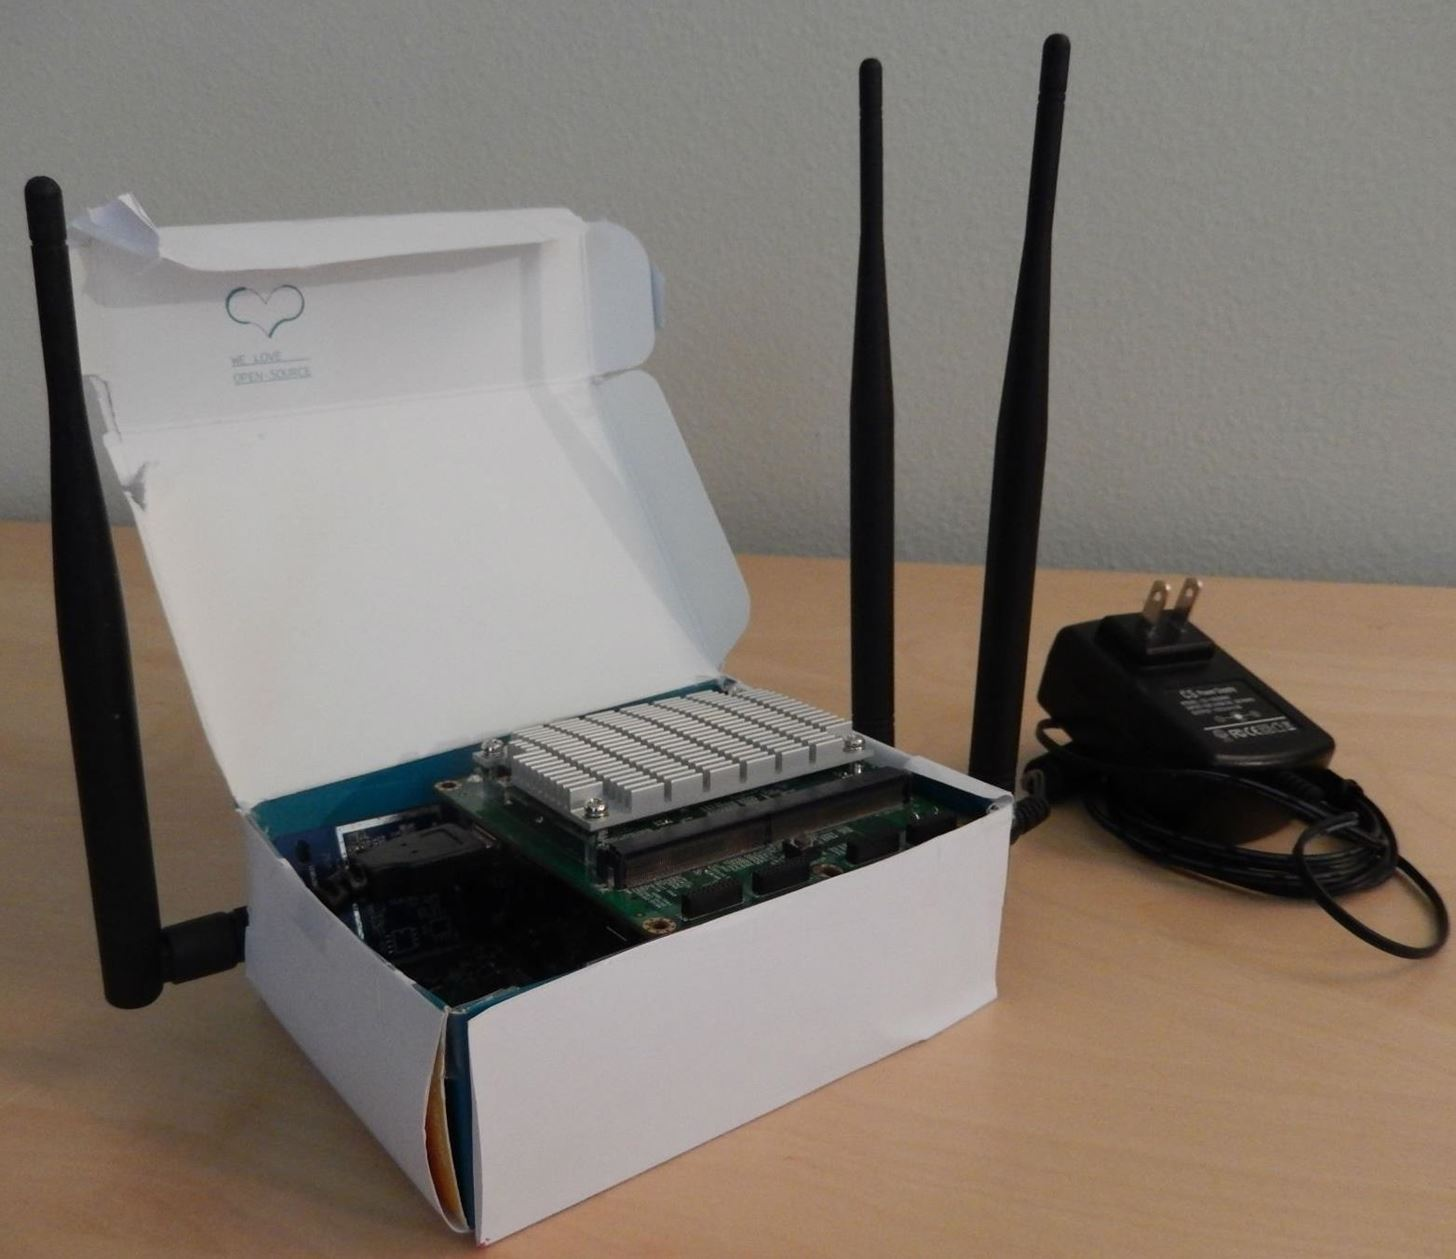 (Reviewed) Question: Proxyham/ProxyGambit, the New Way to Be a Little More Anonymous on Wi-Fi?